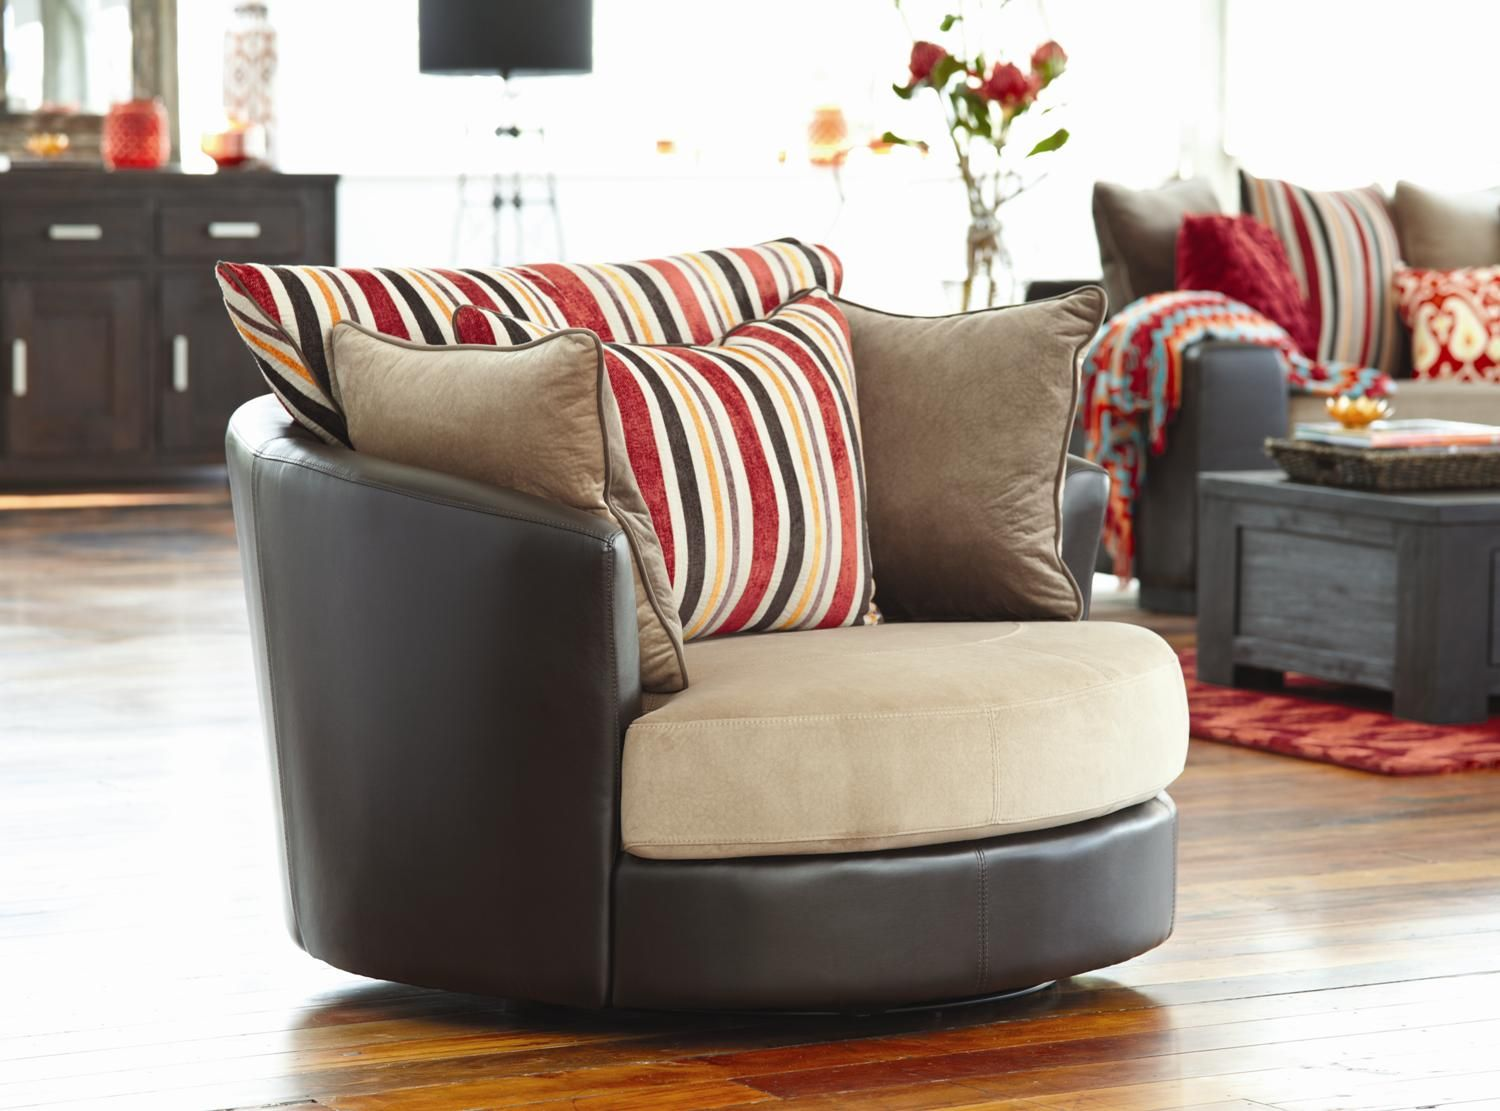 Boston Swivel Chair Large Brown from Harvey Norman NewZealand - Boston Swivel Chair Large Brown From Harvey Norman NewZealand